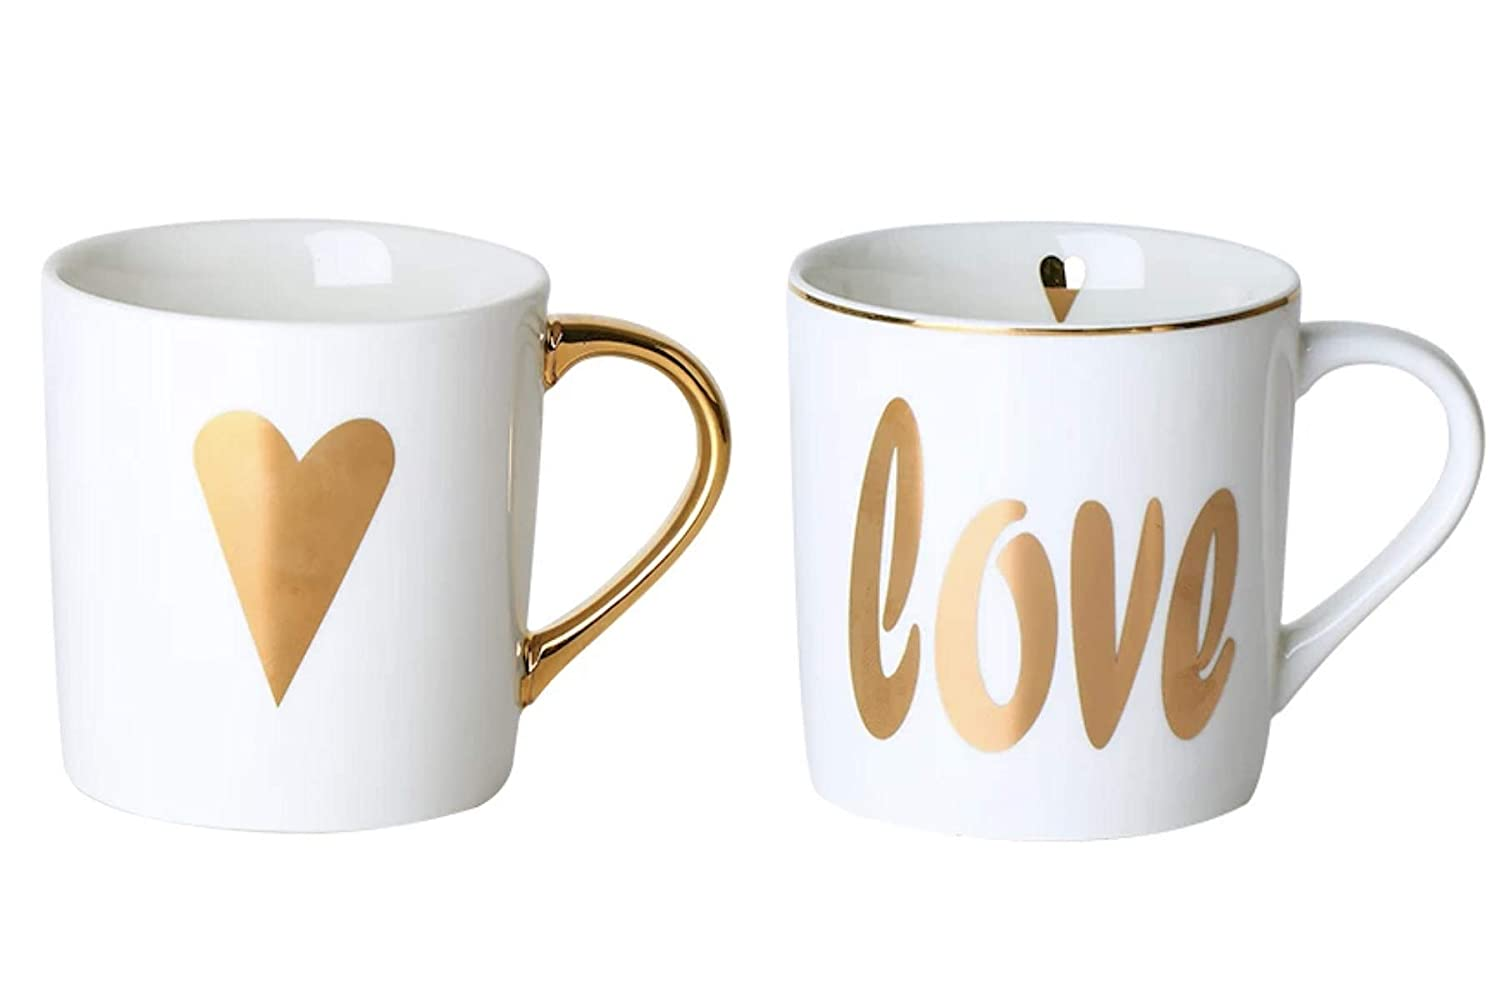 CheeseandU 2Pack Flawless Ceramic Coffee Cups HER King HIS Queen Couple-Mugs Set Gold Silver Painted Porcelain Water Mugs for Couple Boyfriend Anniversary Husband Mom Gift